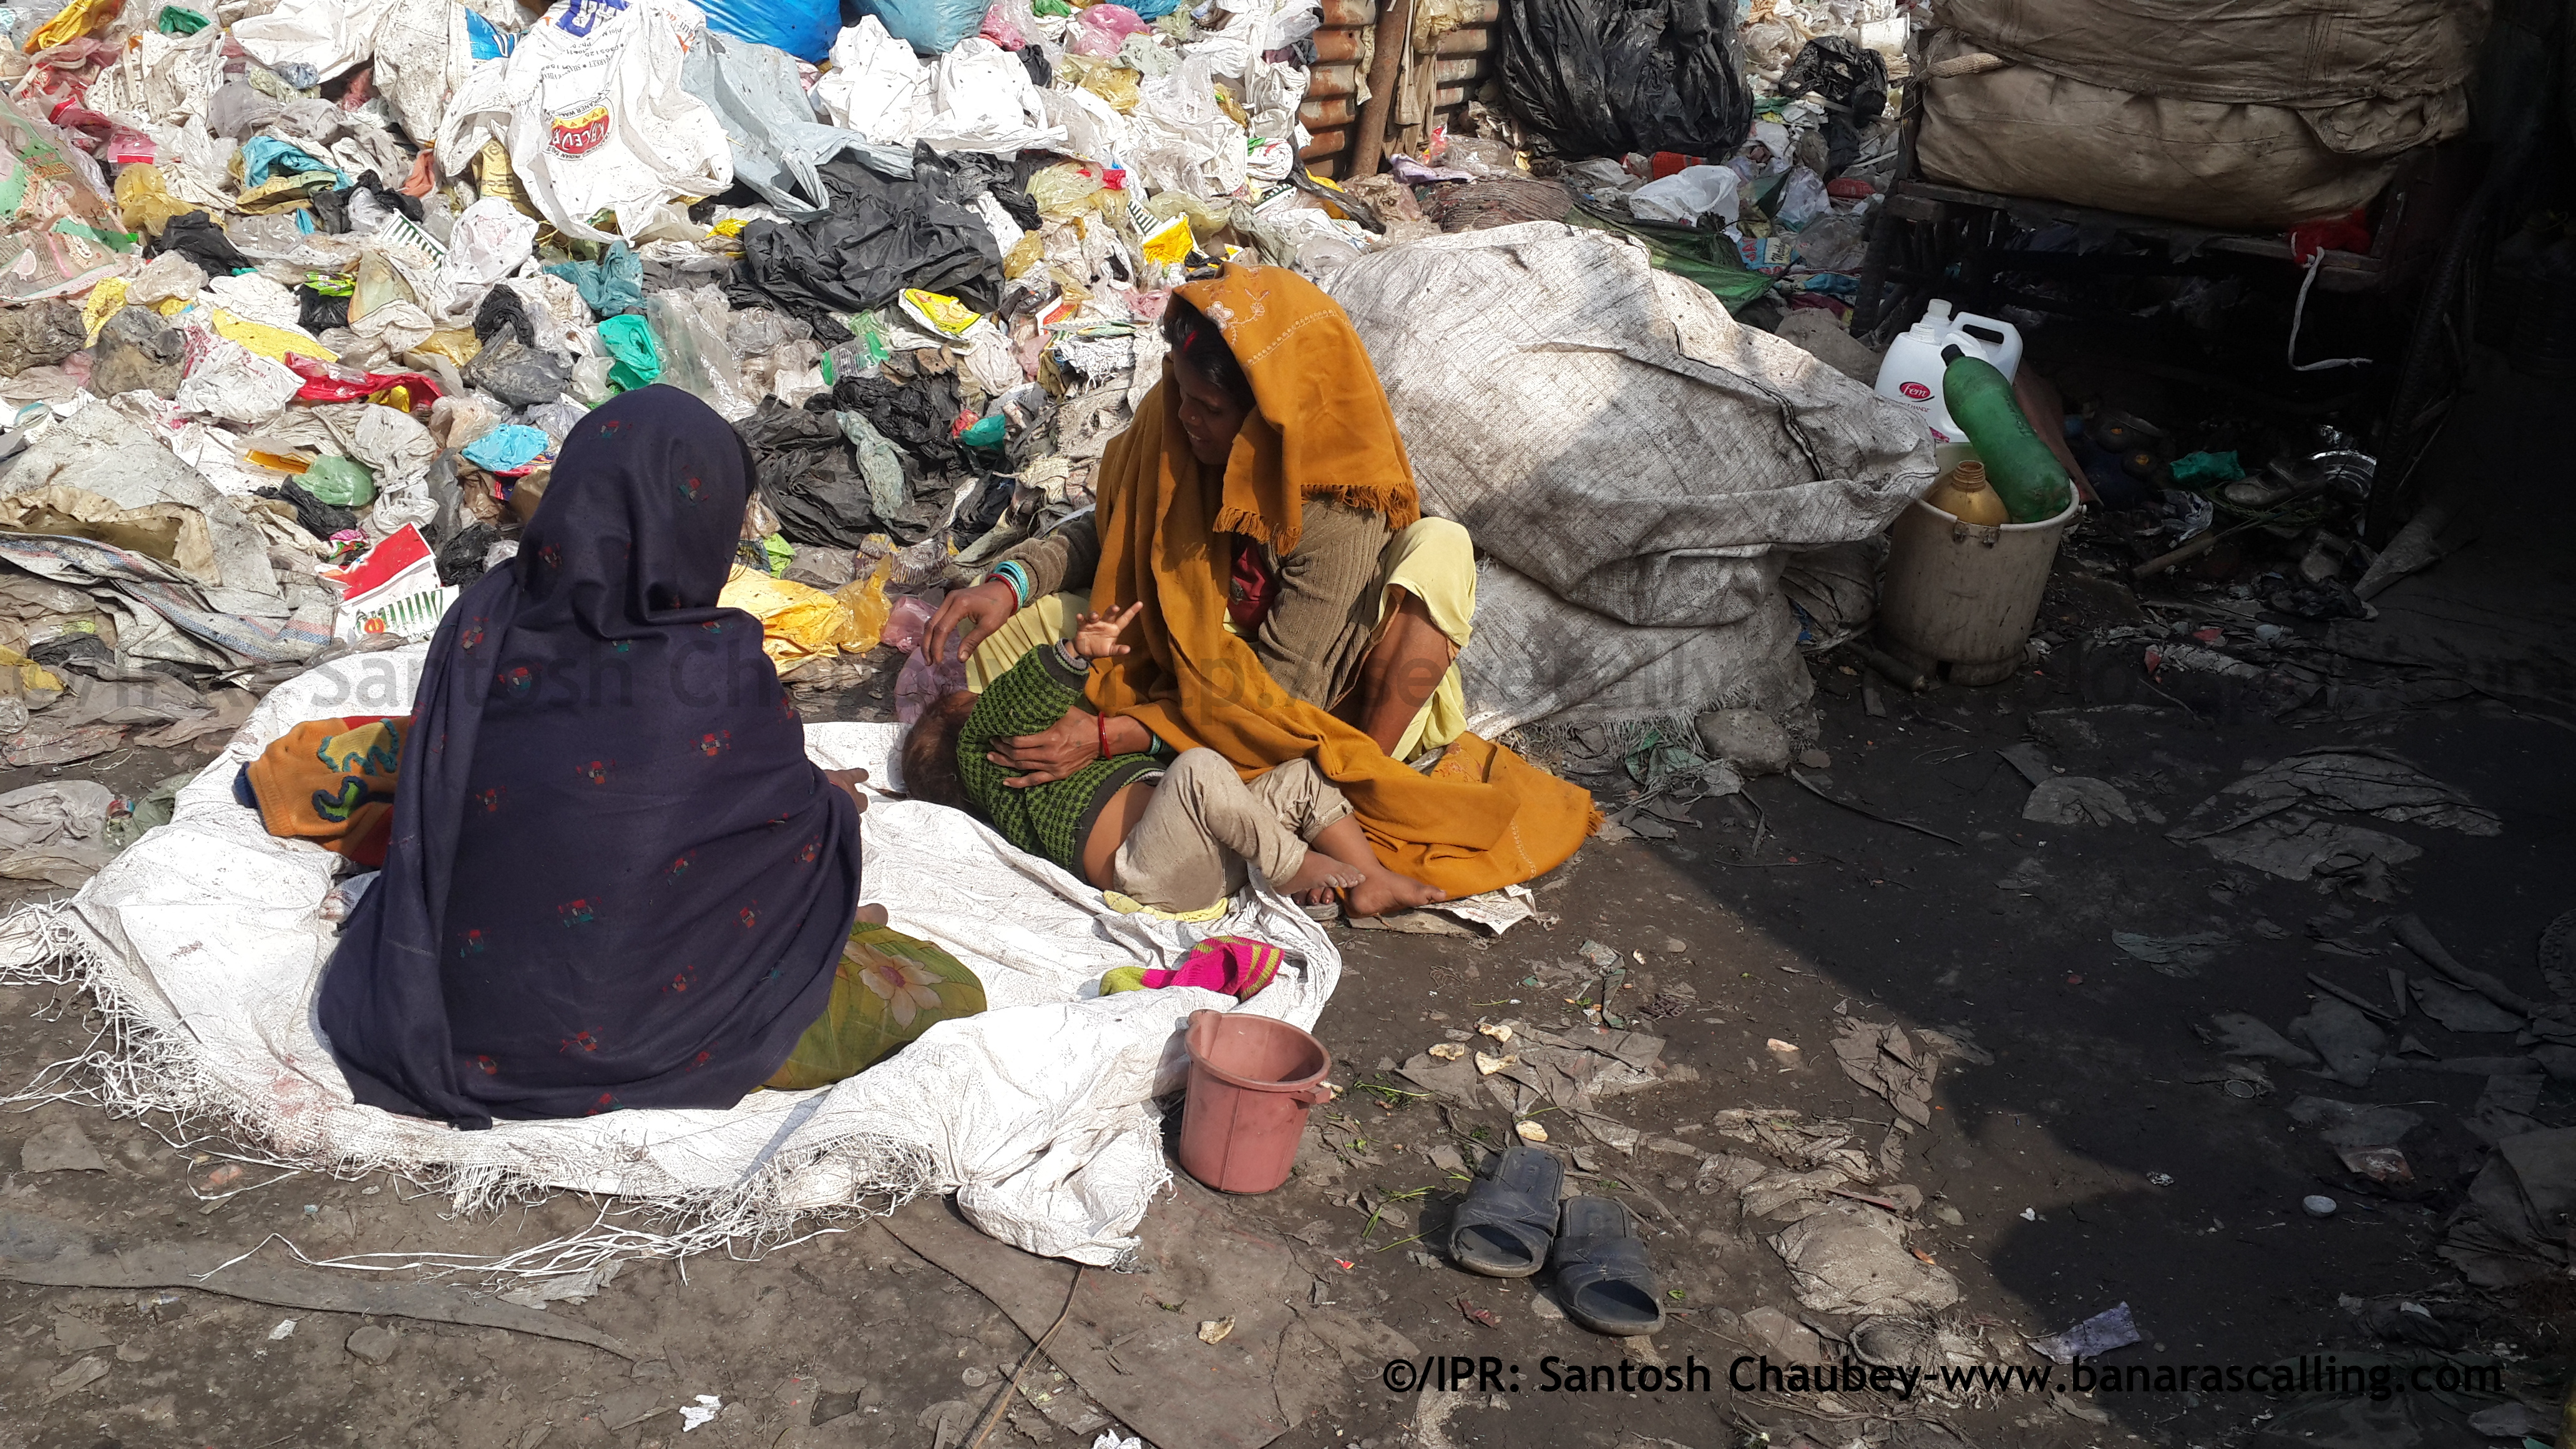 THE LIFE OF A RAGPICKER